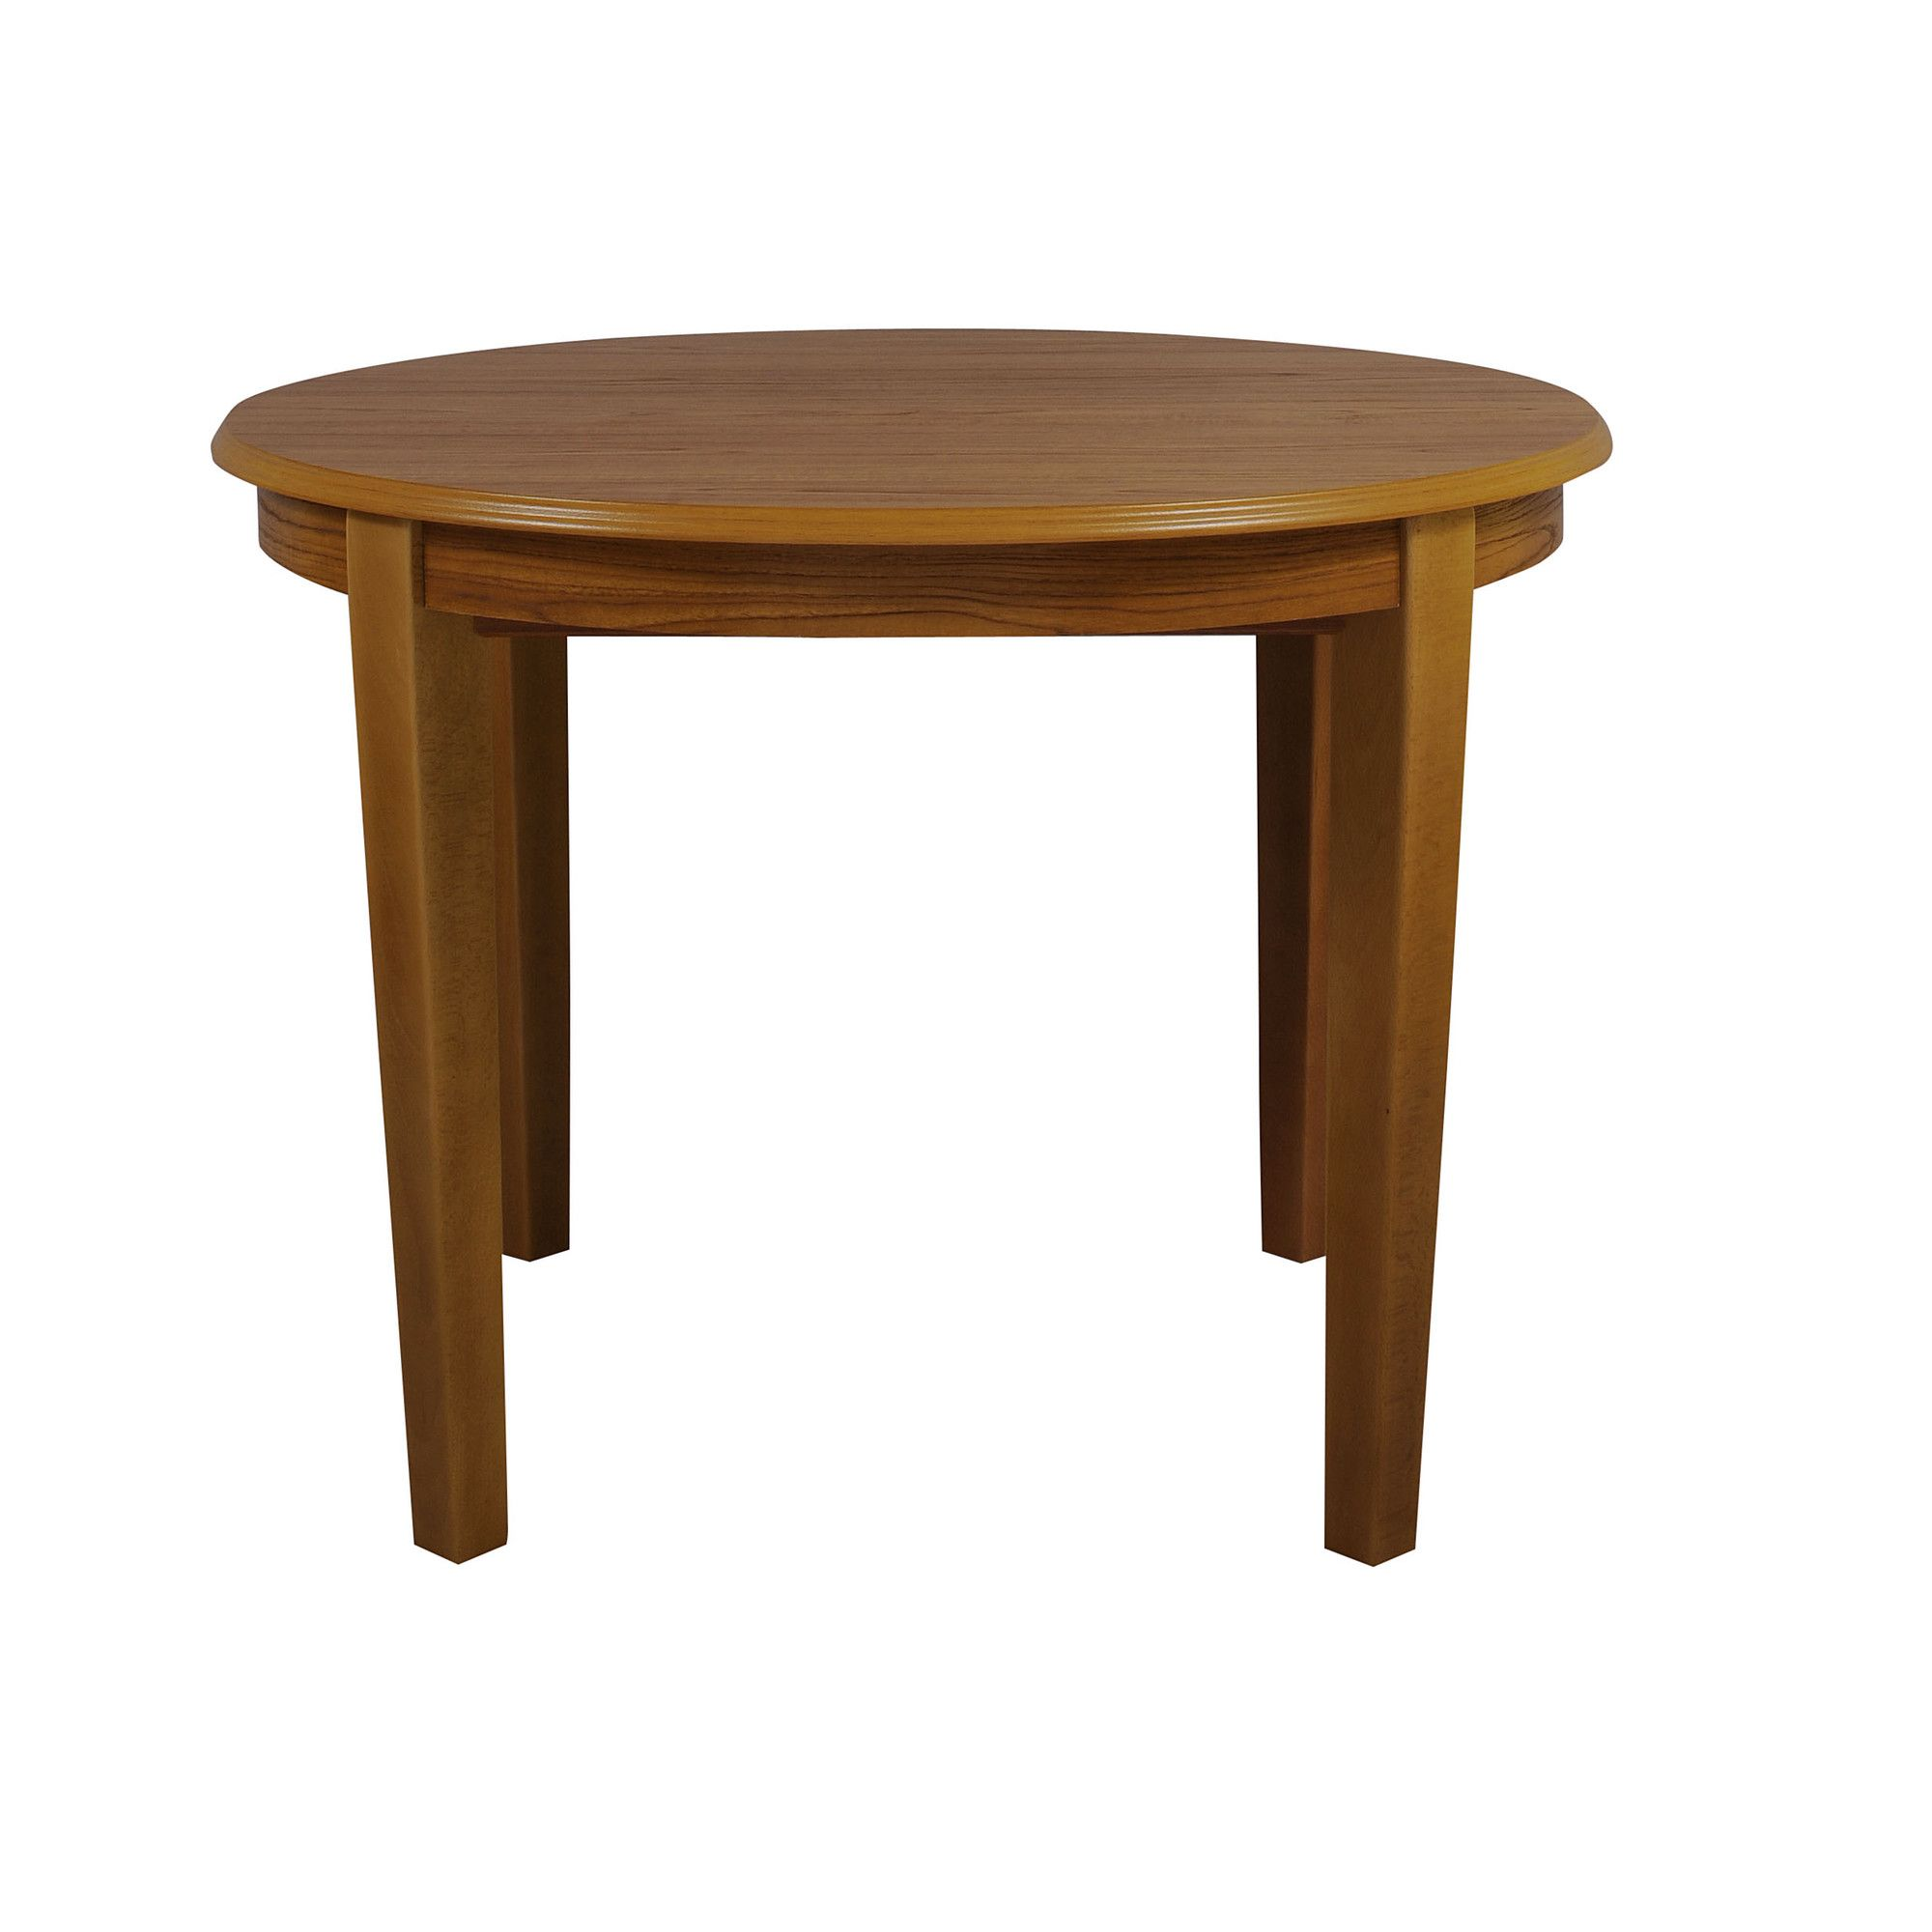 Caxton Tennyson Round Dining Set with 4 Padded Back Dining Chairs in Teak - Oyster at Tesco Direct